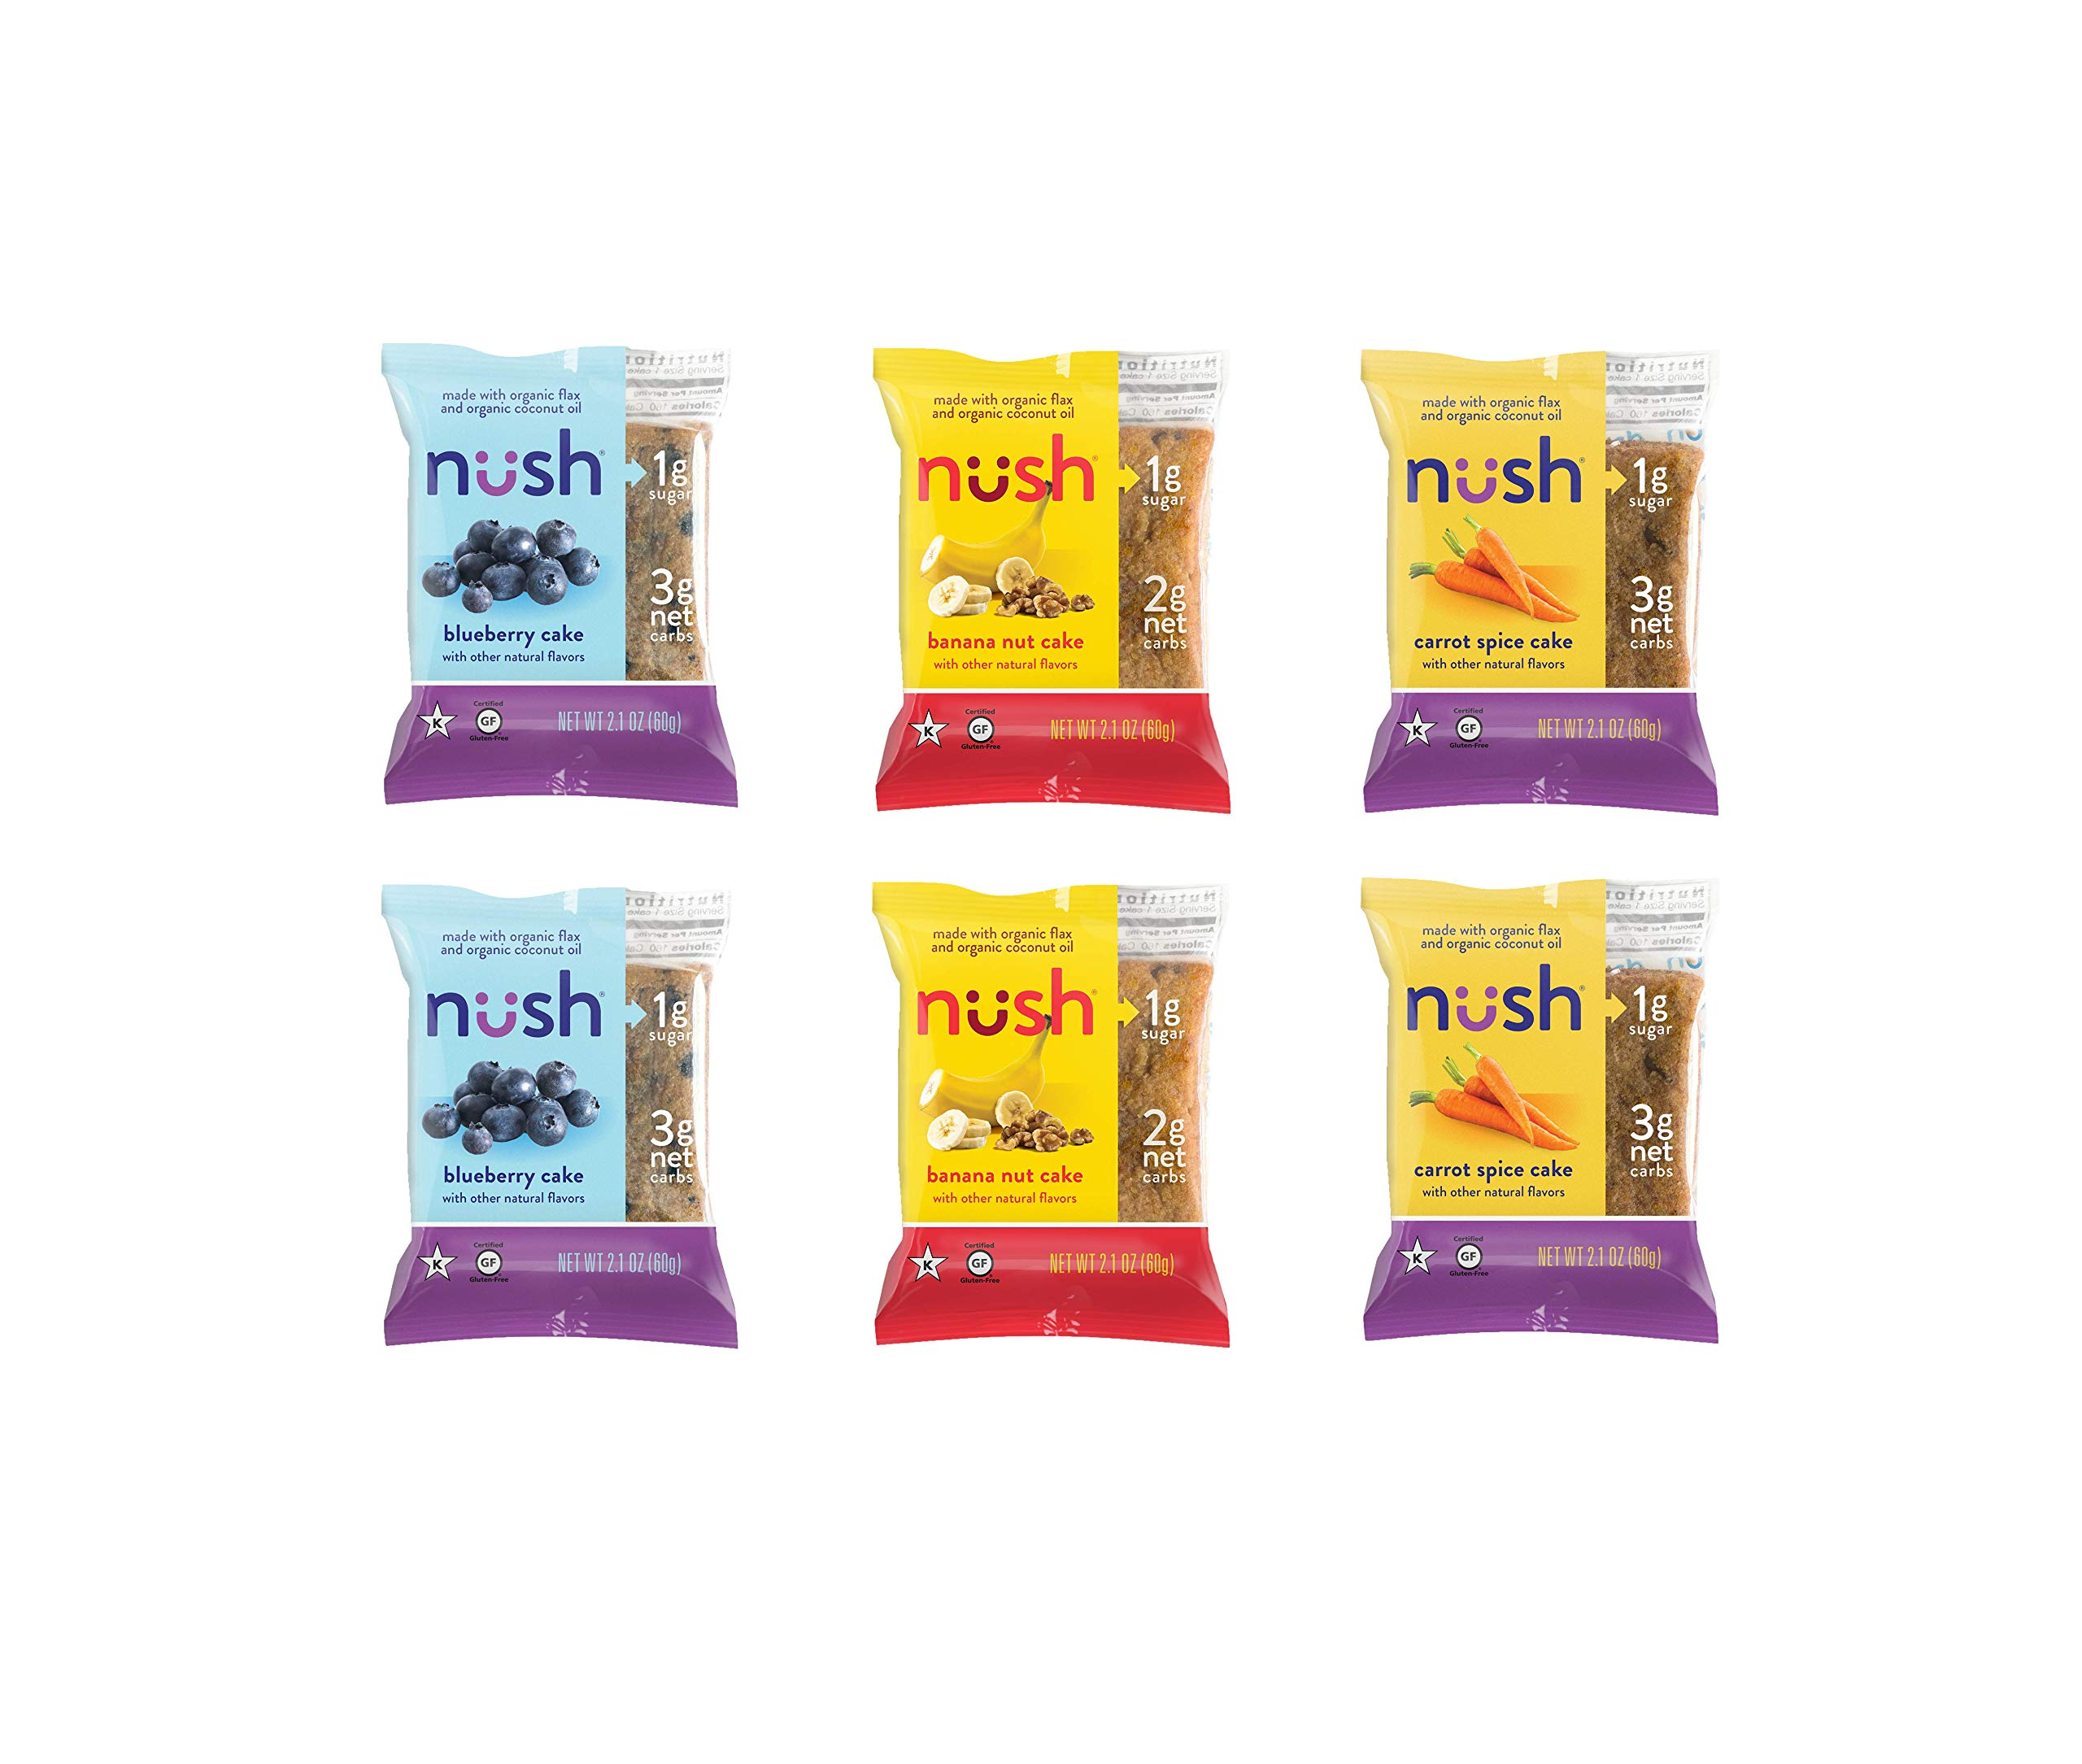 Low Carb Keto Snack Cakes (Flax-Based) Best-Sellers Variety Case - Blueberry, Carrot Spice and Banana Nut - Gluten Free, Soy Free, Organic, No Added Sugar - Great for Ketogenic Diet